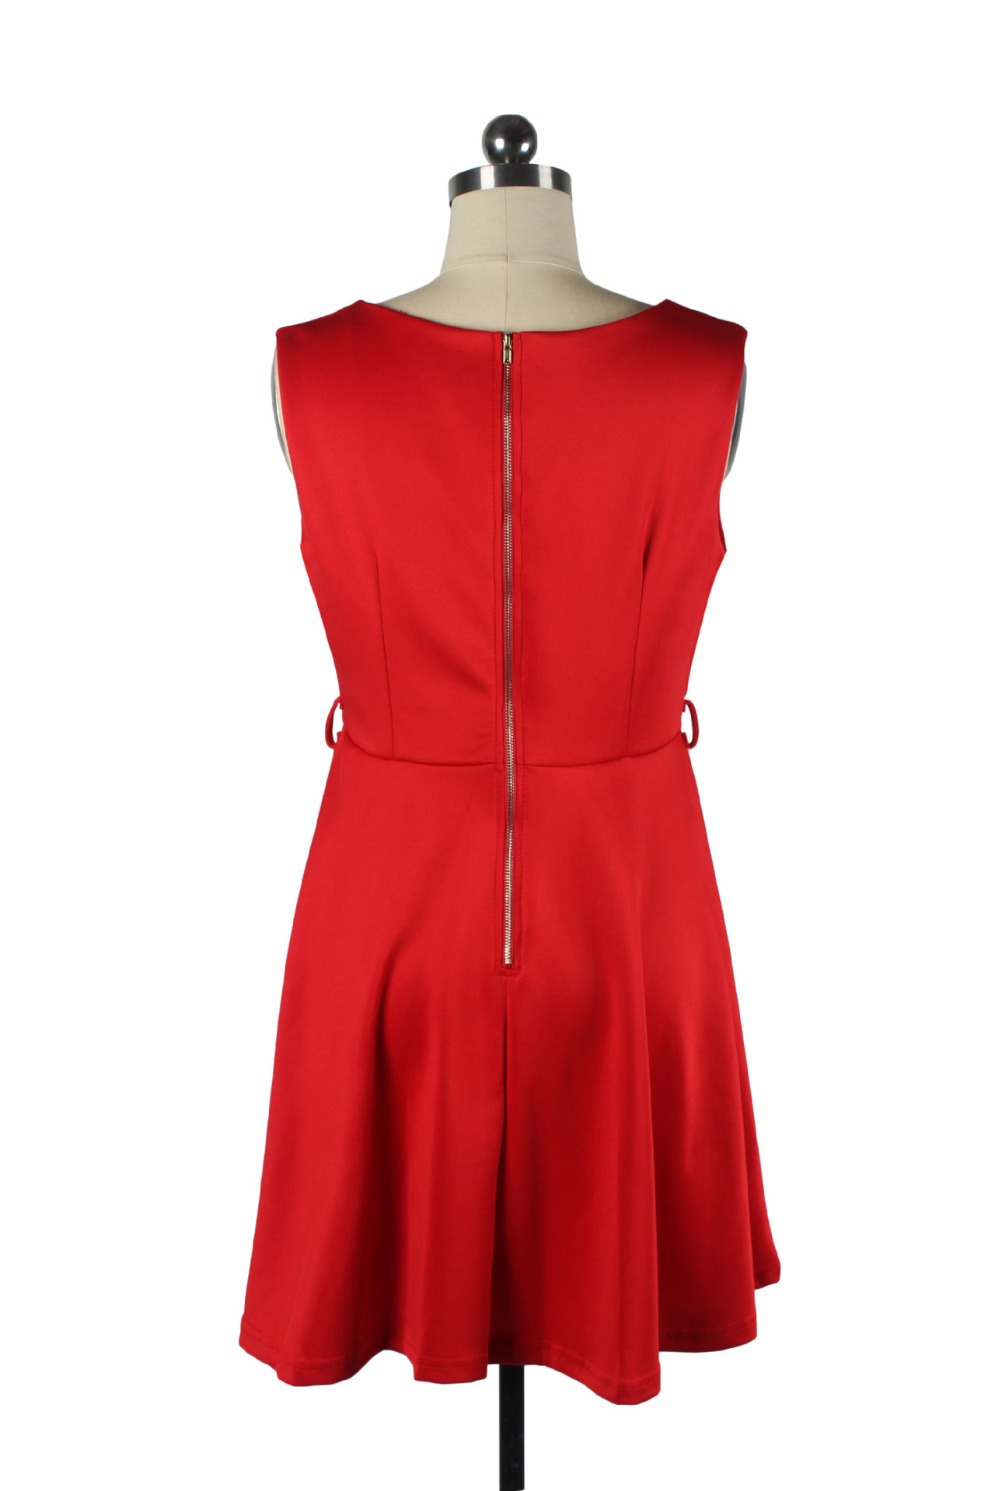 a499ce6fa68 Get Quotations · J.L.I solid skater dress plus size Tank red green purple  elegant Sleeveless vintage casual summer women s